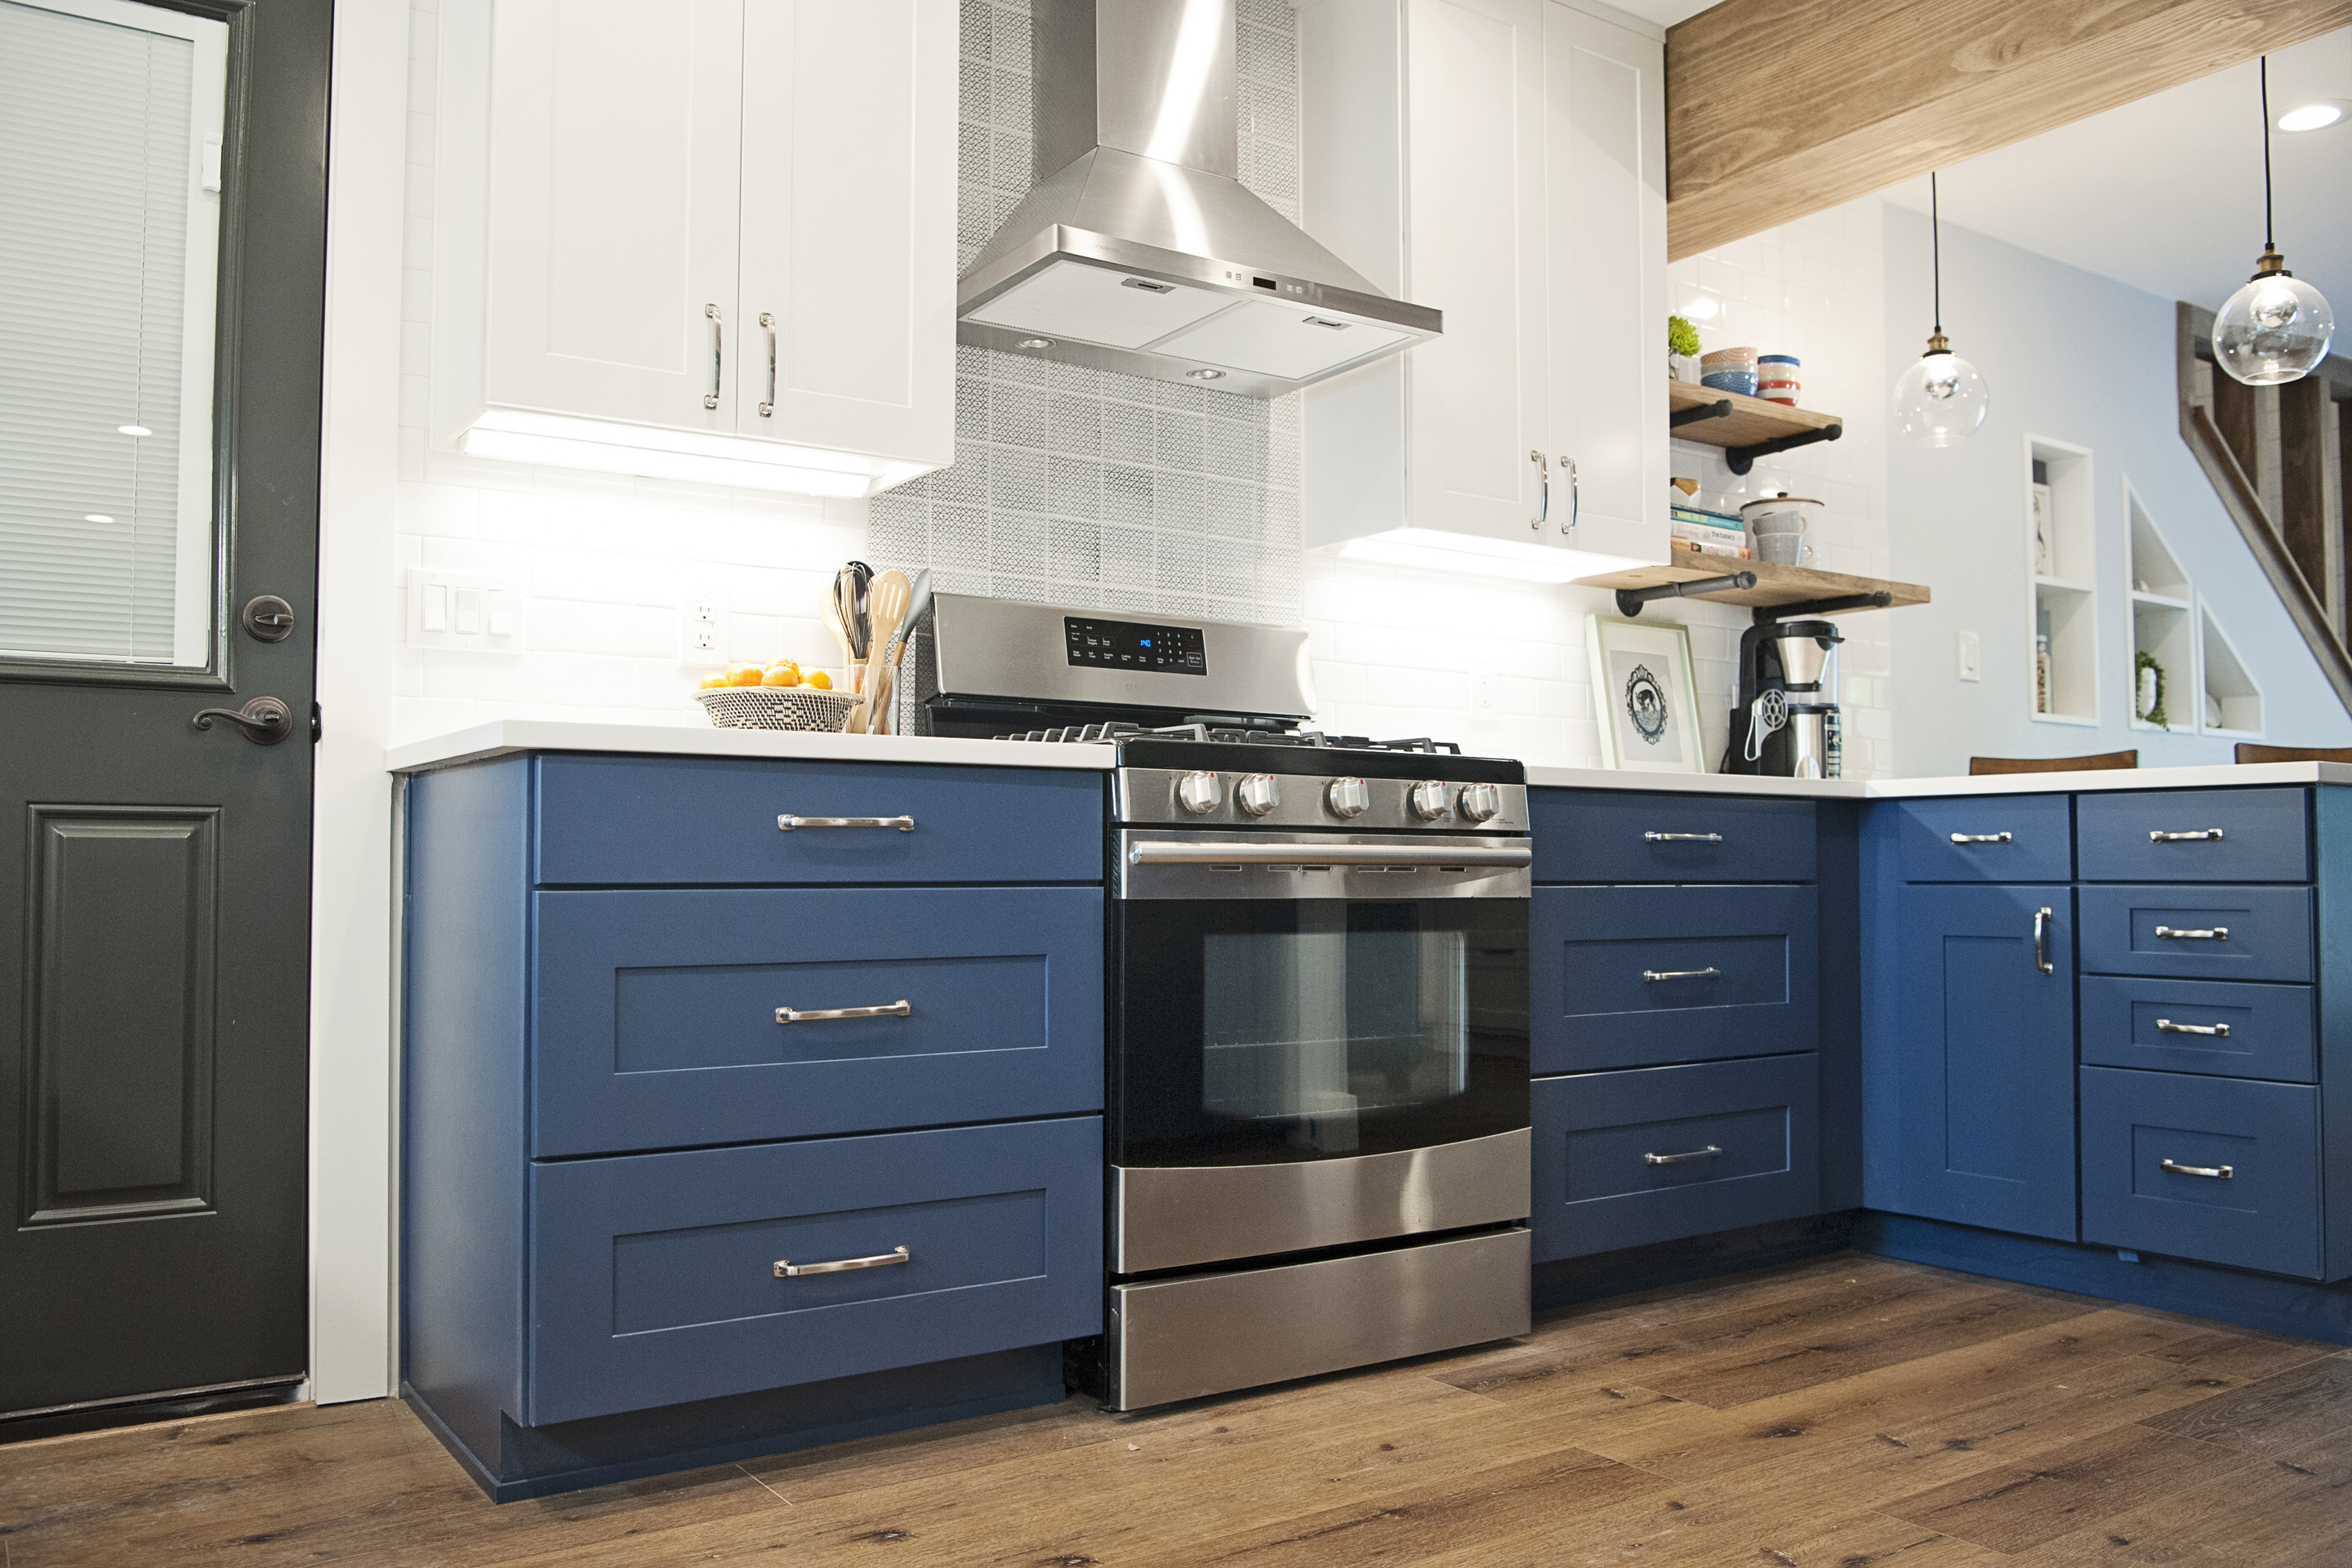 Trend Alert: Blue Kitchen Cabinets | Wolf Home Products on blue white yellow kitchen, blue kitchen hutches, blue country kitchens, blue green gray kitchen, blue kitchen countertops, blue kitchen colors, blue kitchen tile, blue kitchen bench, blue kitchen ceilings, blue and green kitchen, blue kitchen island, blue italian kitchen, blue kitchen wallpaper, blue kitchen remodel, blue kitchen walls, blue kitchen pulls, blue and white kitchen ideas, blue floor cabinets, blue pantry cabinet, blue kitchen room ideas,